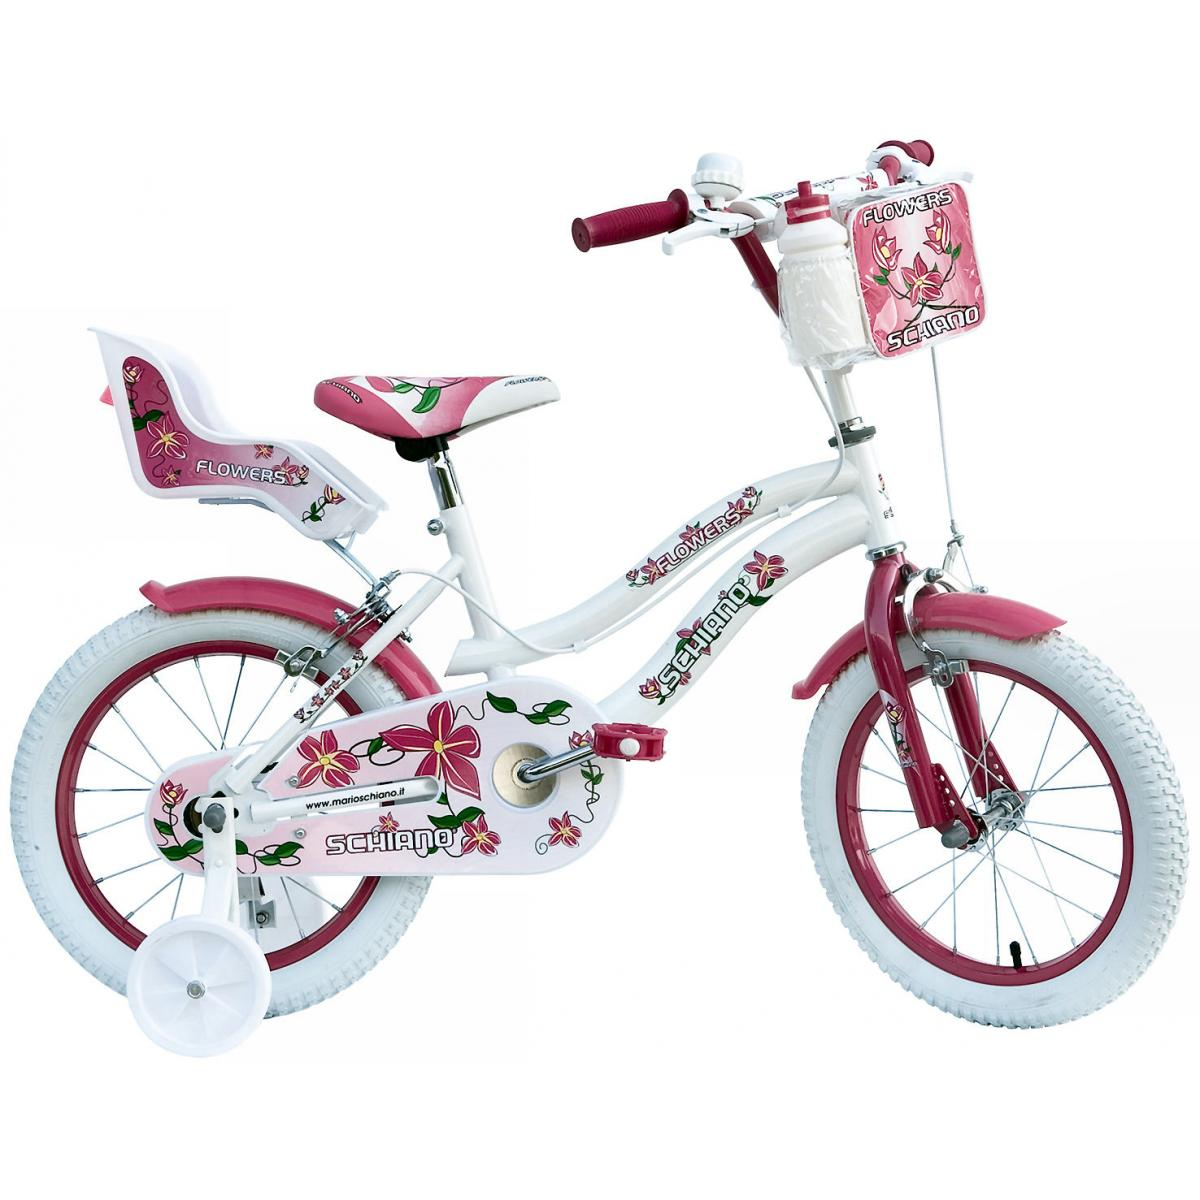 kinderfahrrad schiano flowers 14 zoll fahrrad kinder 3 4 5 6 jahre top ebay. Black Bedroom Furniture Sets. Home Design Ideas